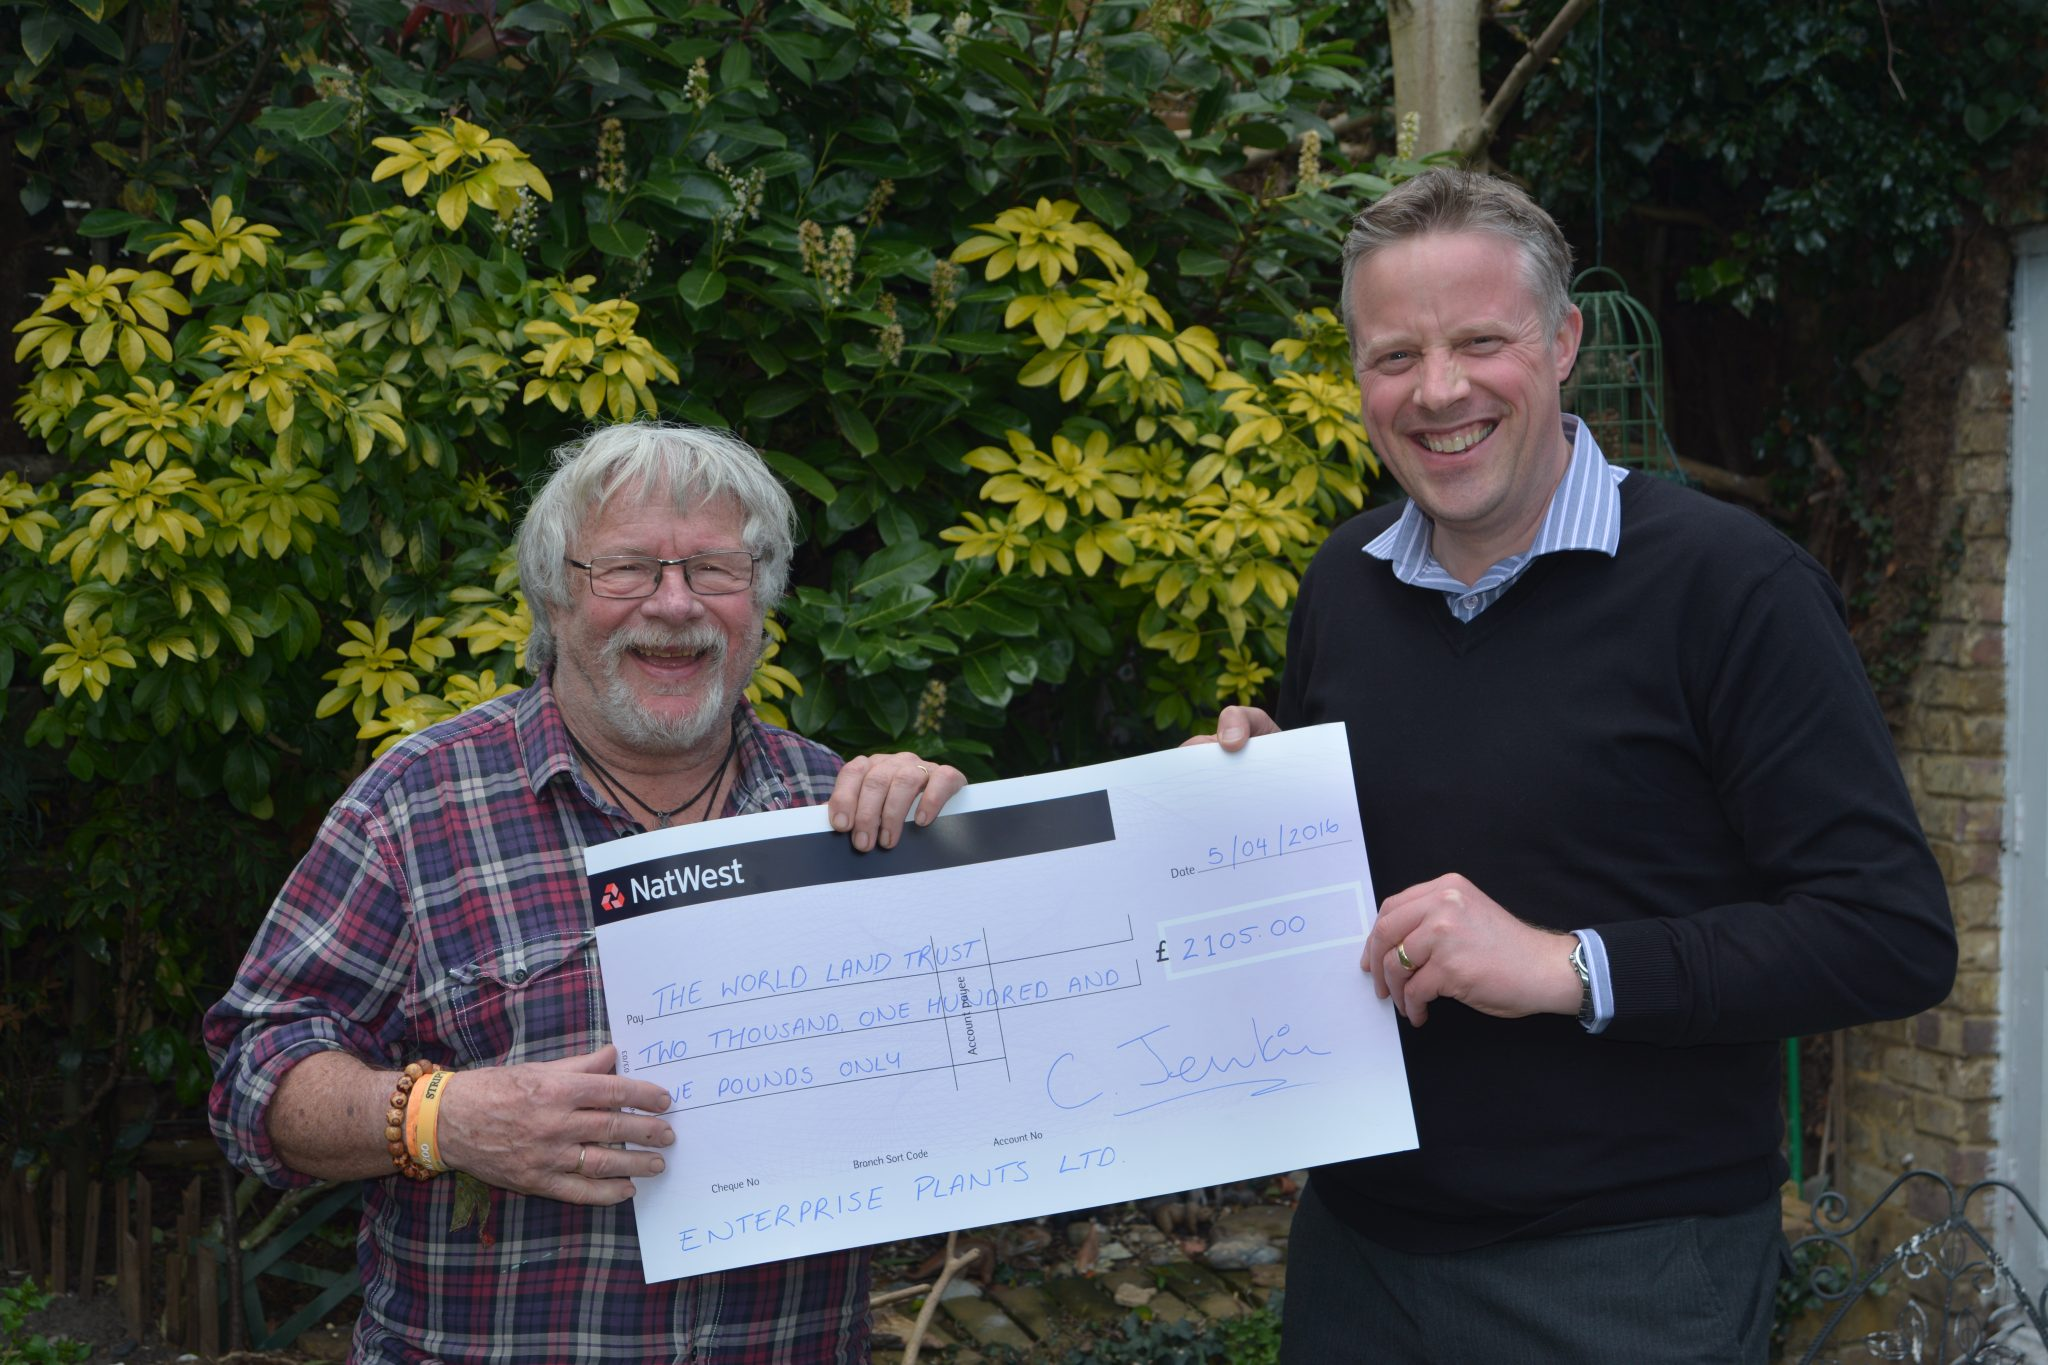 Matthew Moncton presenting cheque to Bill Oddie. Credit Enterprise Plants.